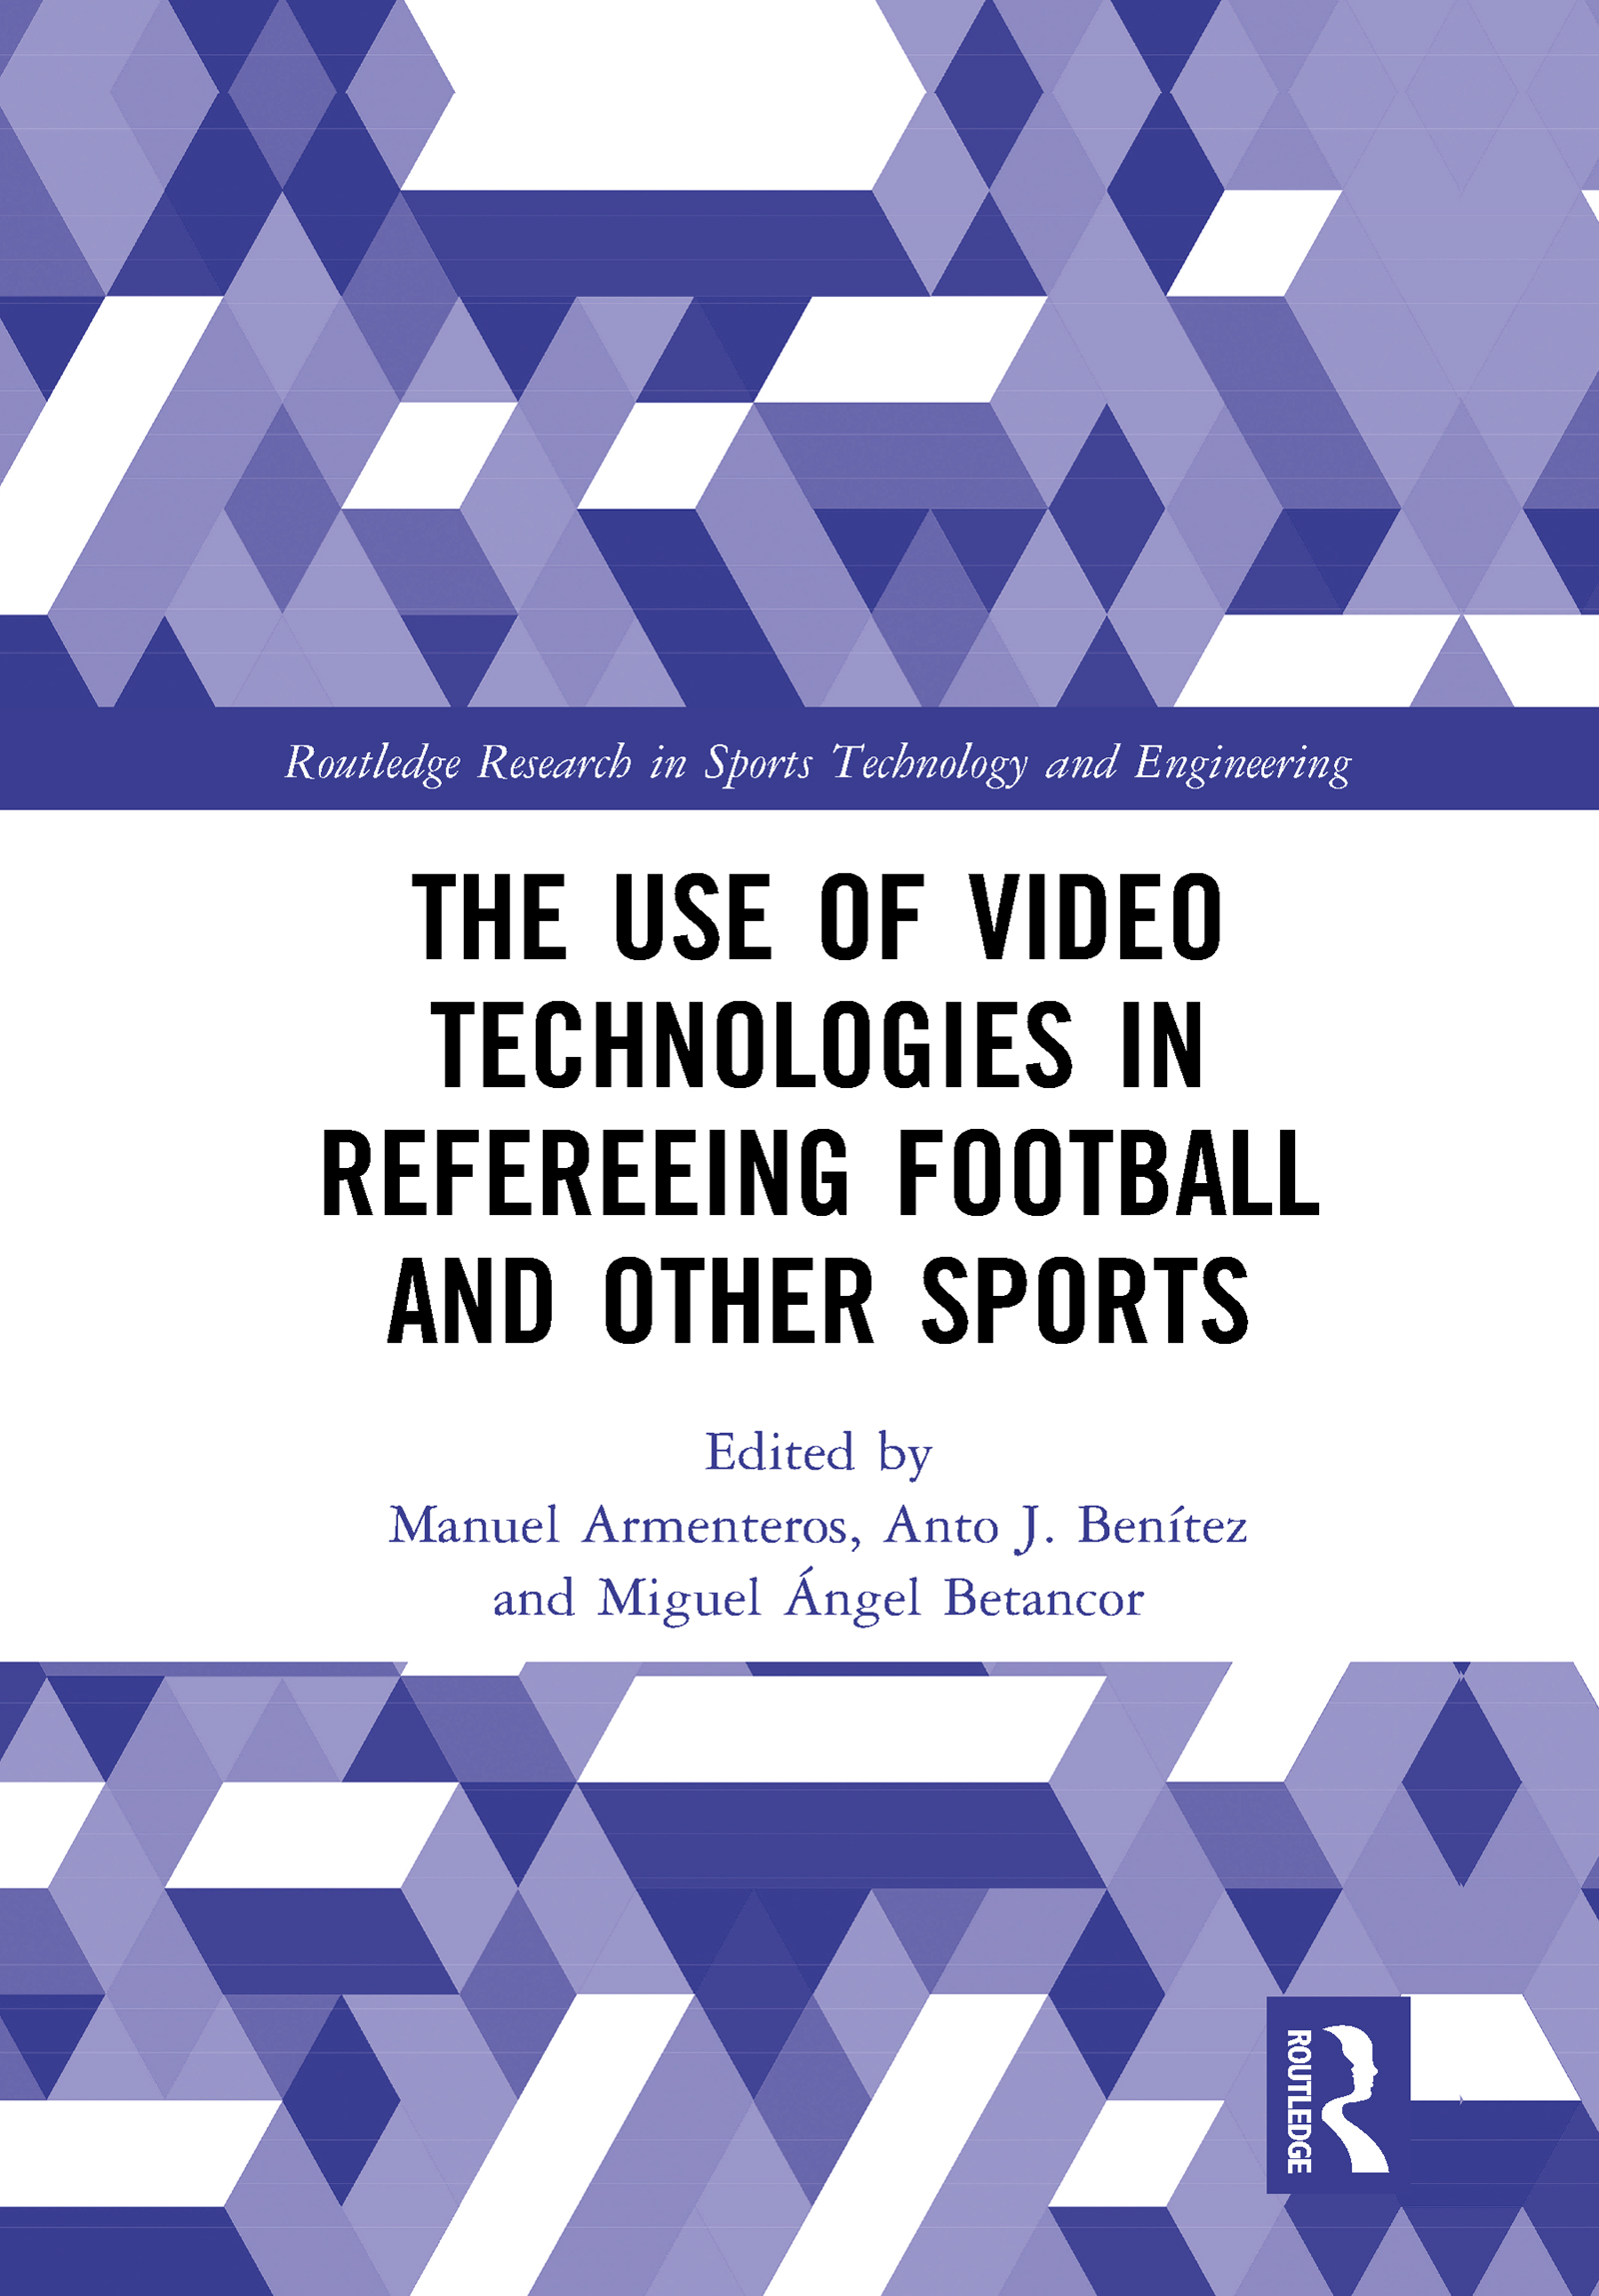 The Use of Video Technologies in Refereeing Football and Other Sports